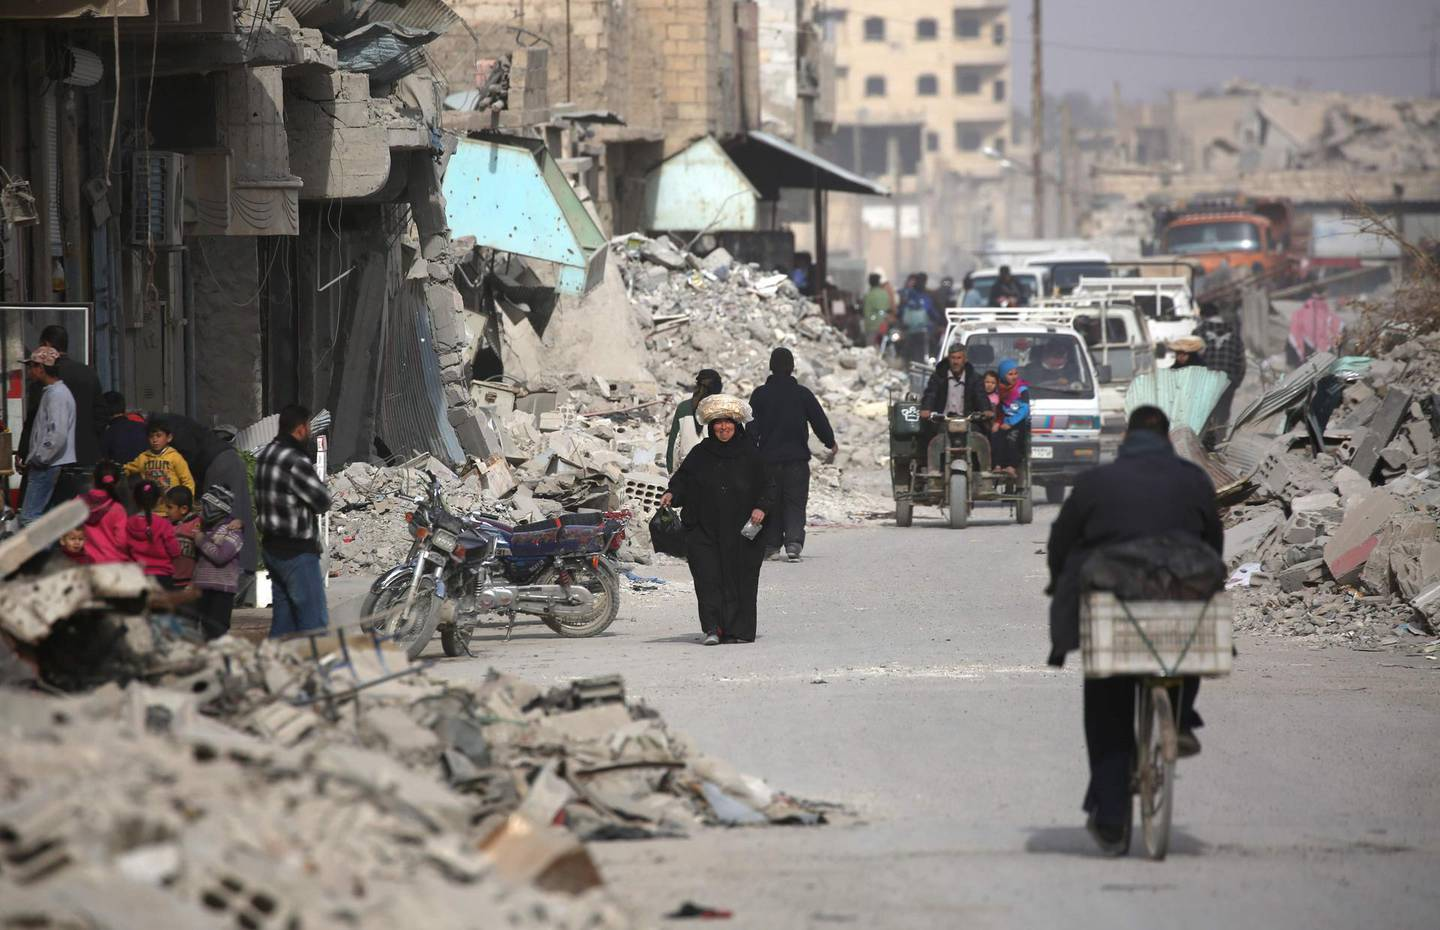 Syrians walk amidst the debris of destroyed buildings in the northern Syrian city of Raqa, on January 11, 2018 after a huge military operation led on the ground by Kurdish fighters and in the air by US warplanes defeated jihadists from the Islamic State group but also left the city completely disfigured. Once home to around 300,000 people, Raqa's neighbourhoods were empty when it was declared retaken in mid-October. Three months on, despite the lack of infrastructure and the lingering threat of unexploded mines and bombs, a trickle of residents -- a few hundred families -- are attempting to return.  / AFP PHOTO / DELIL SOULEIMAN